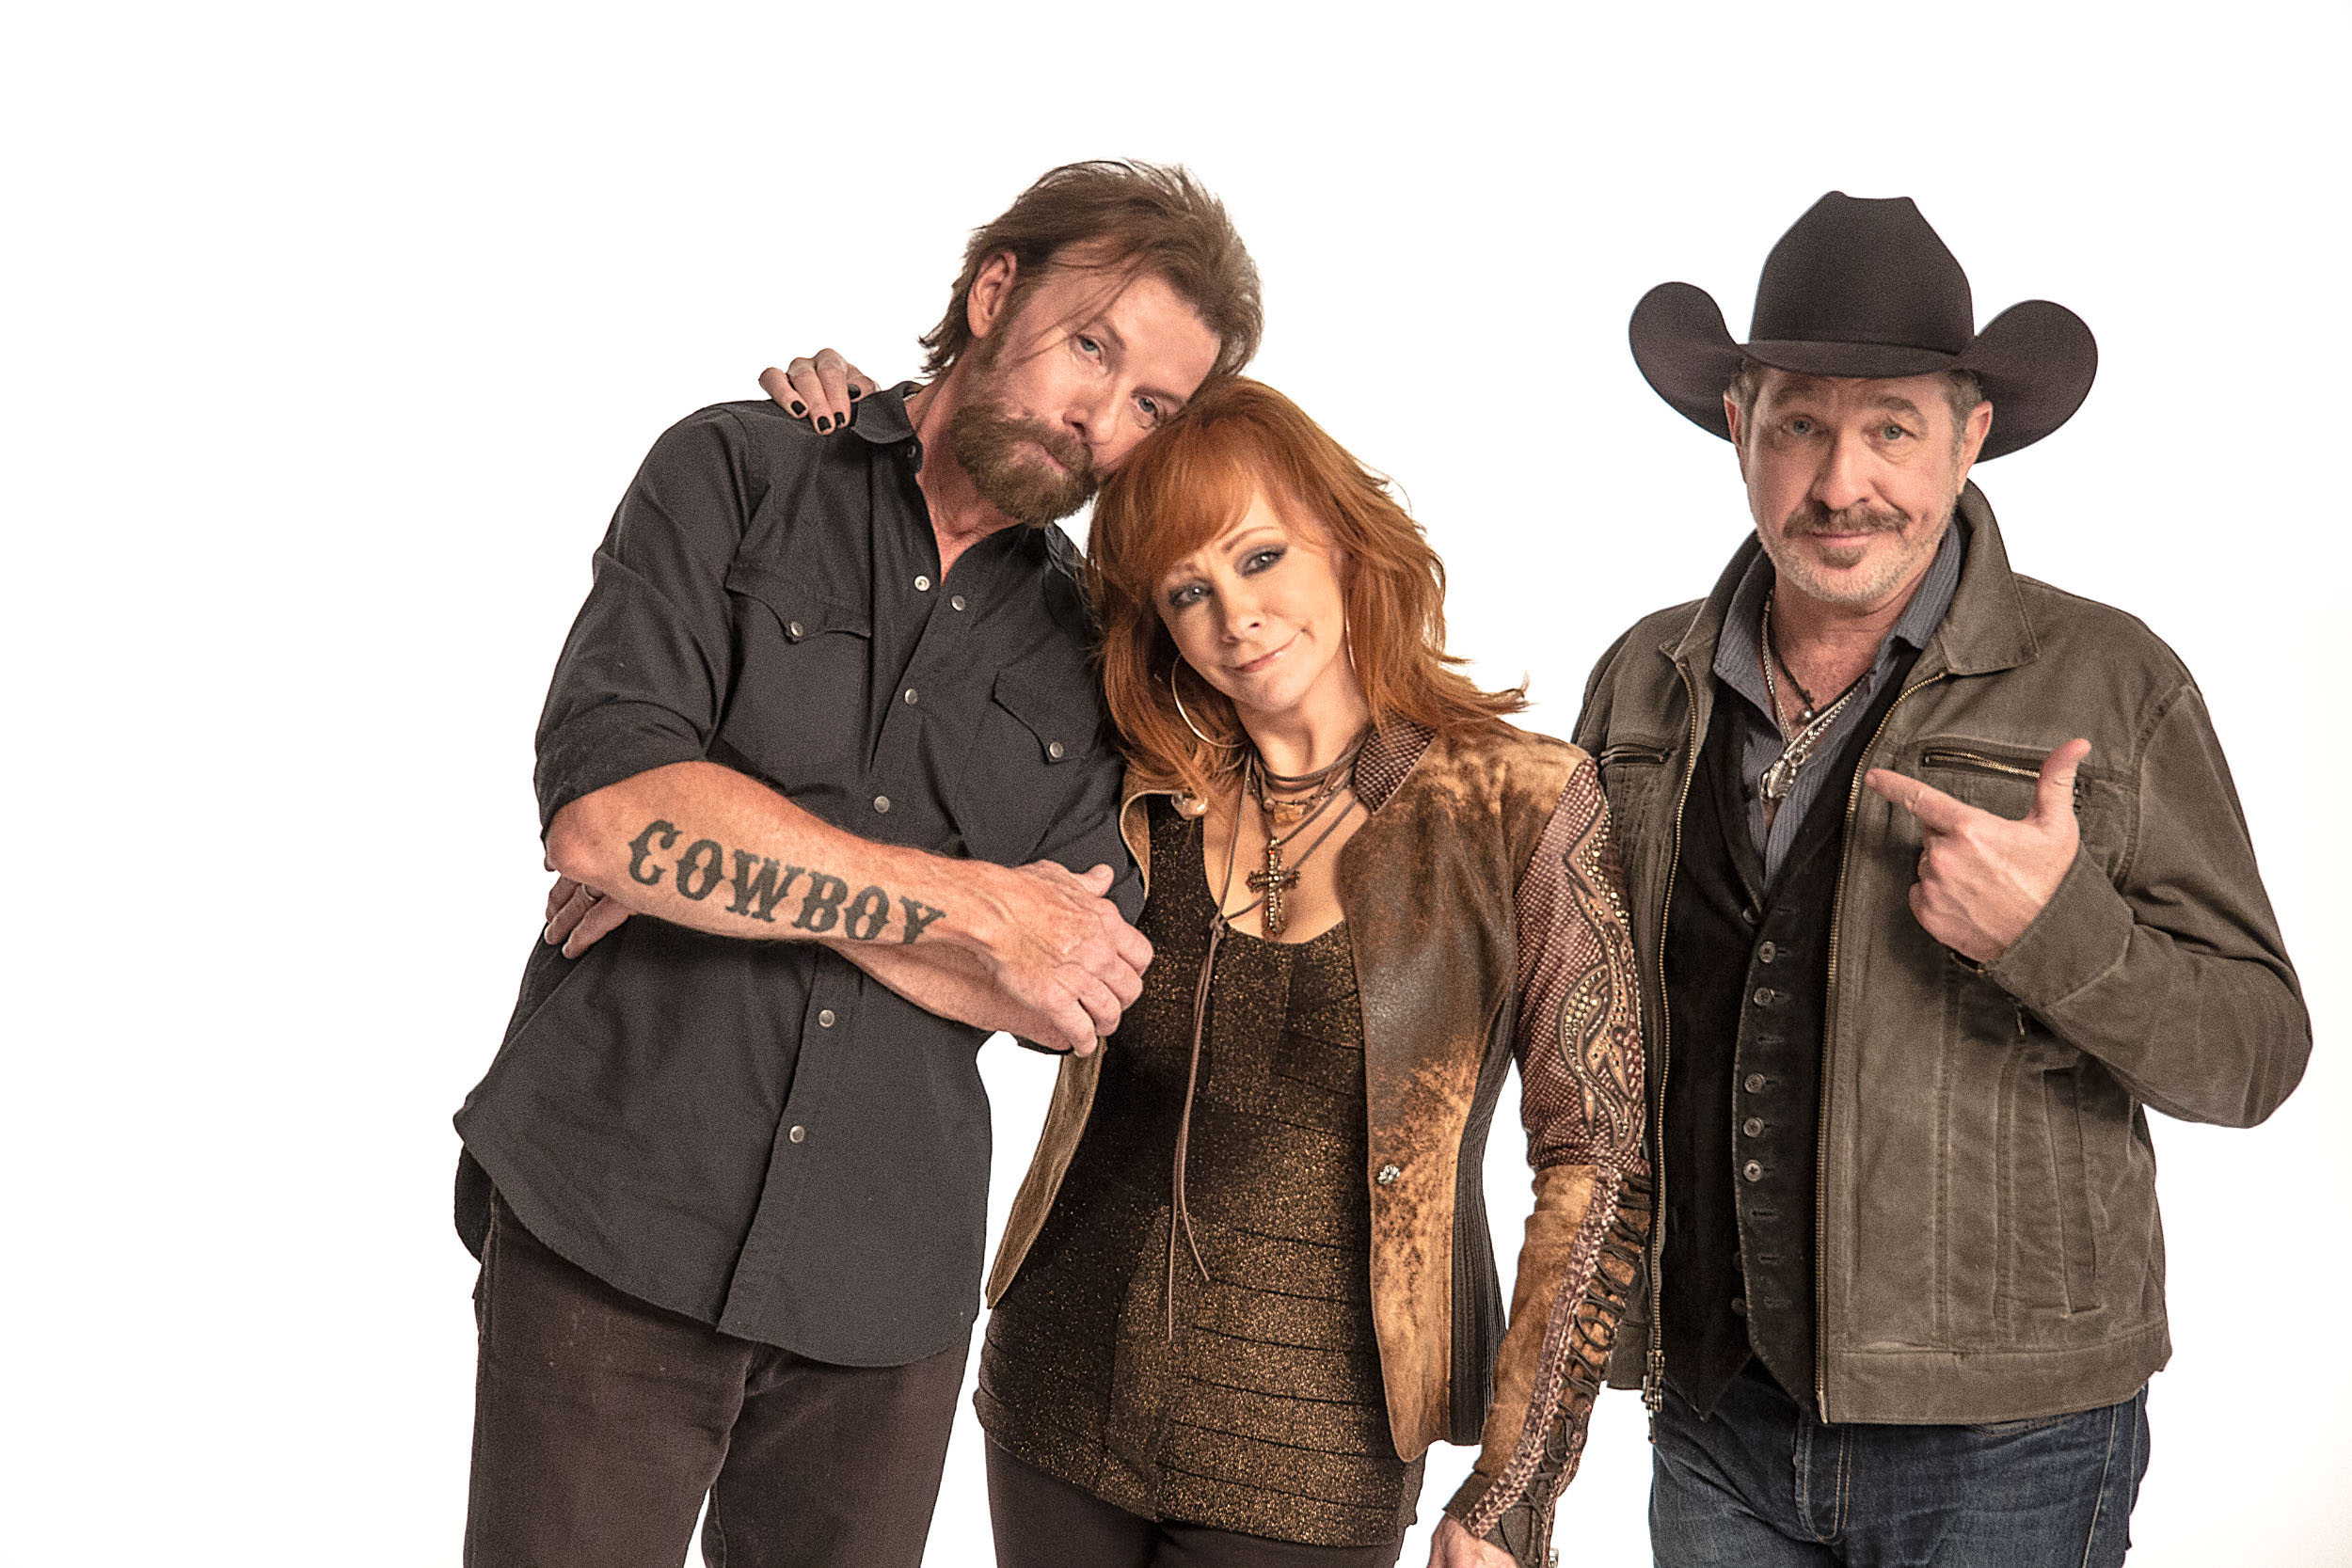 Florida Photography |Ronnie Dunn, Reba and Kix Brooks - Music and Celebrity | Steven Martine